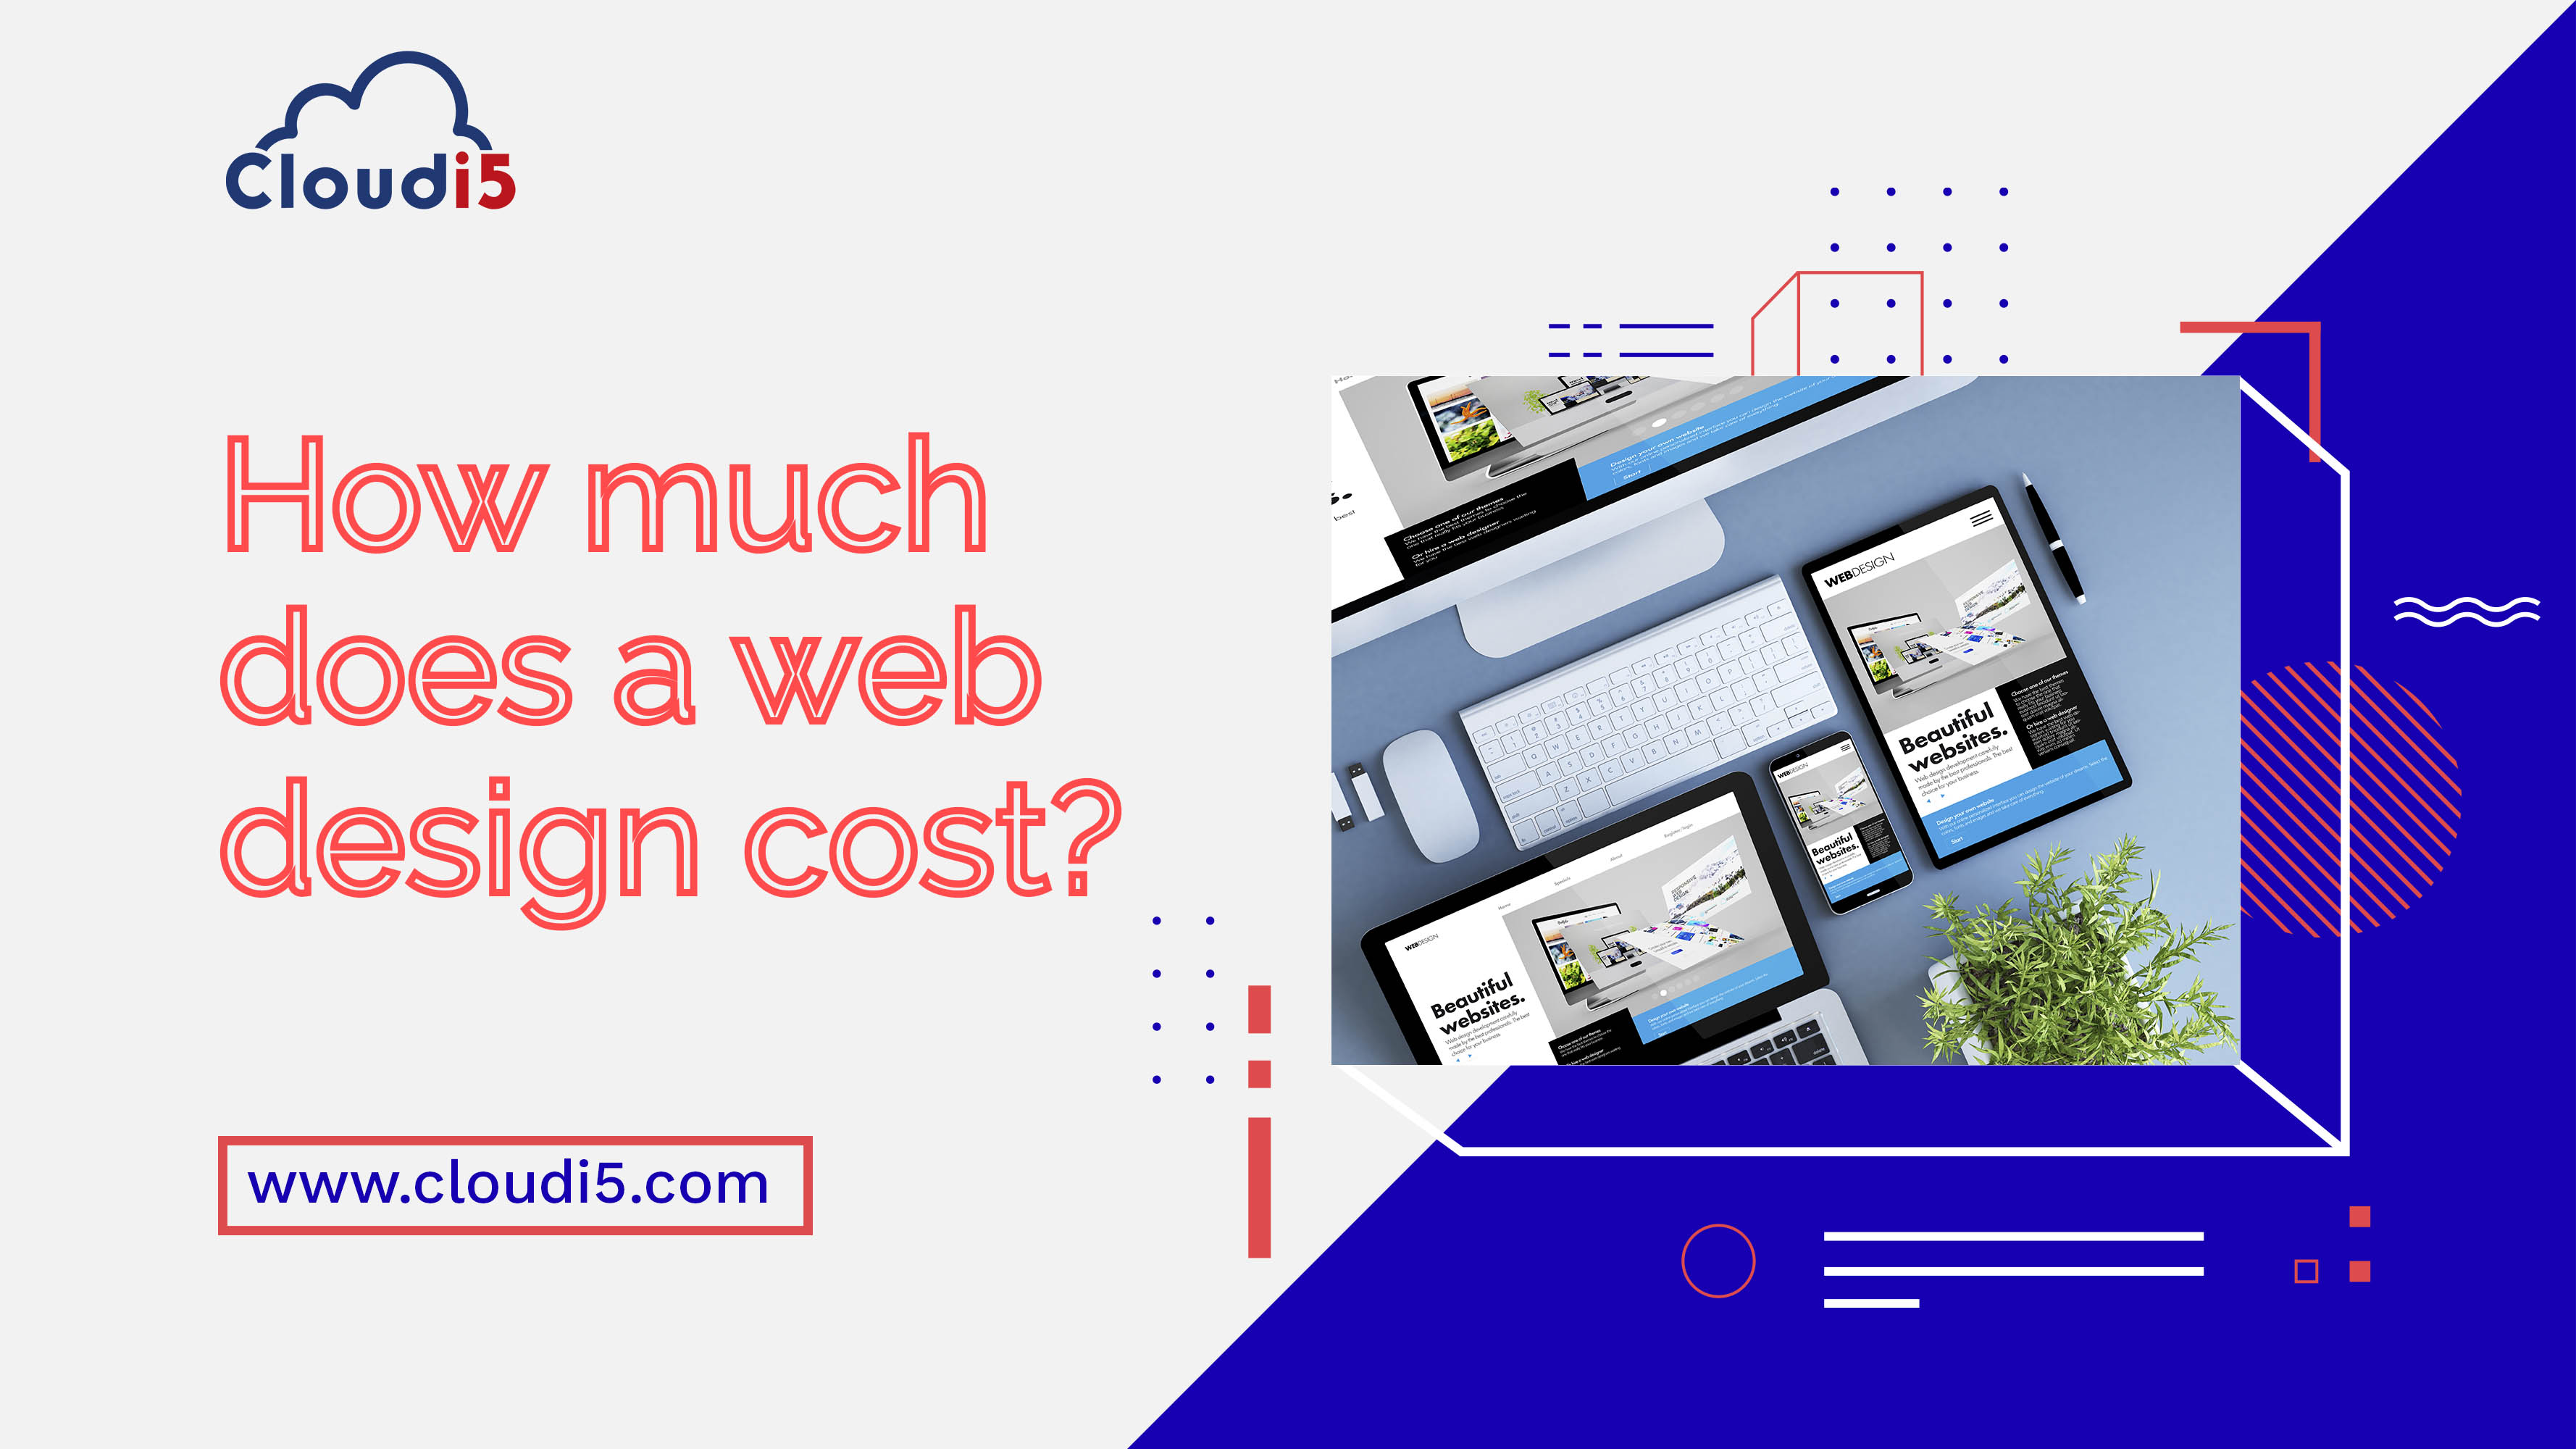 How much does a web design cost?